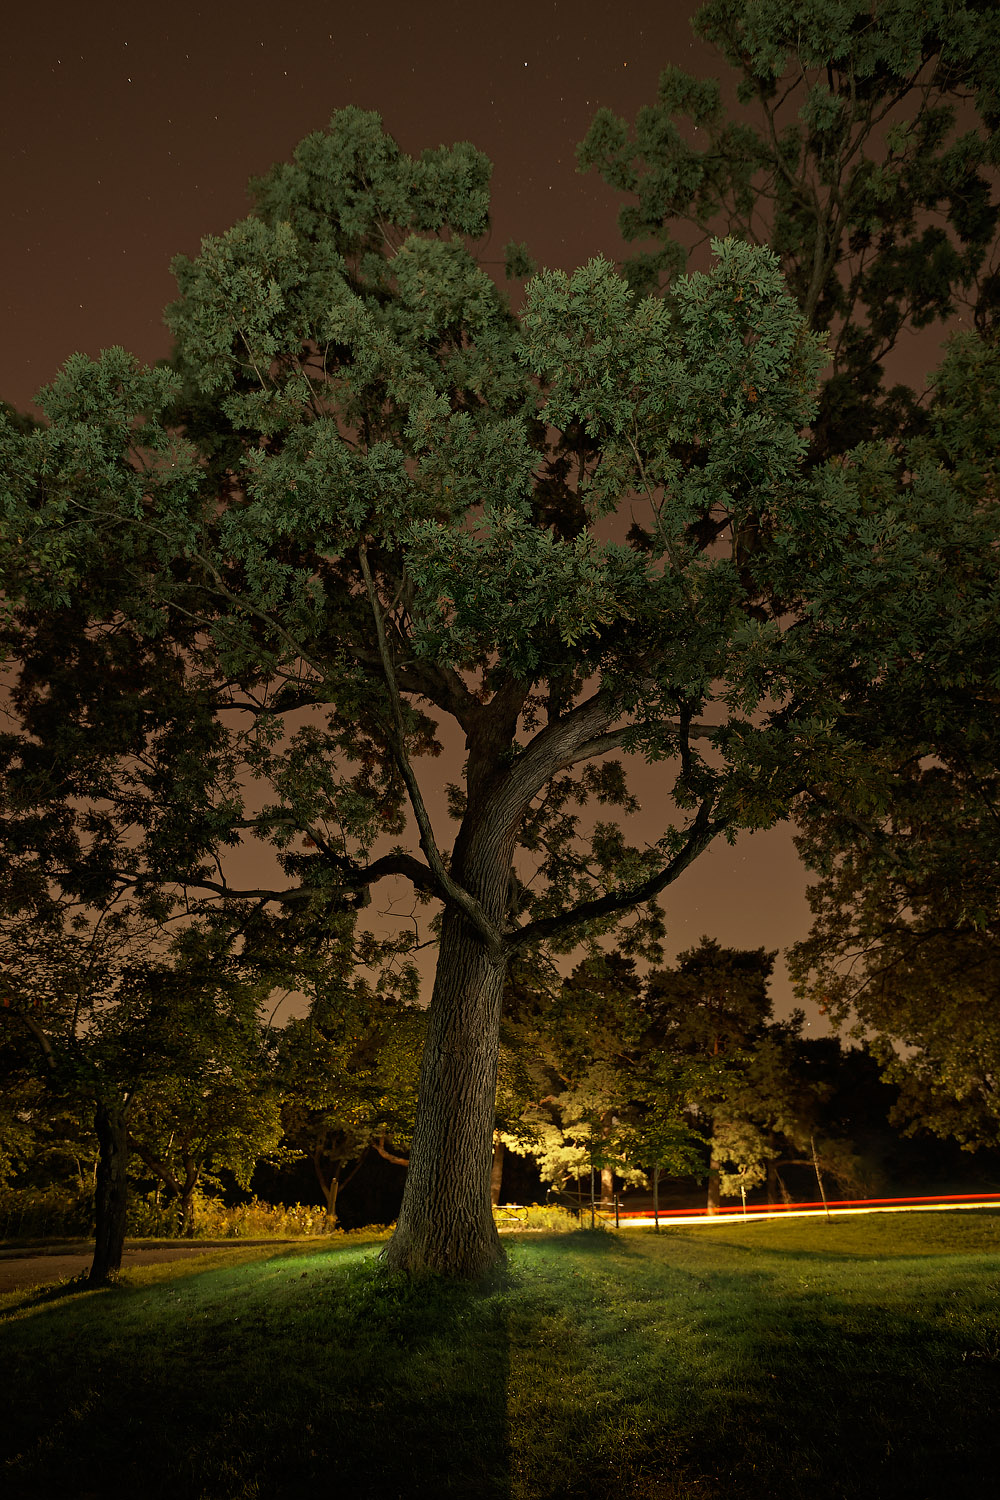 nocturnal still series   16x24 edition of 12 - $1,250   28x42 edition of 5 - starting at $2,200